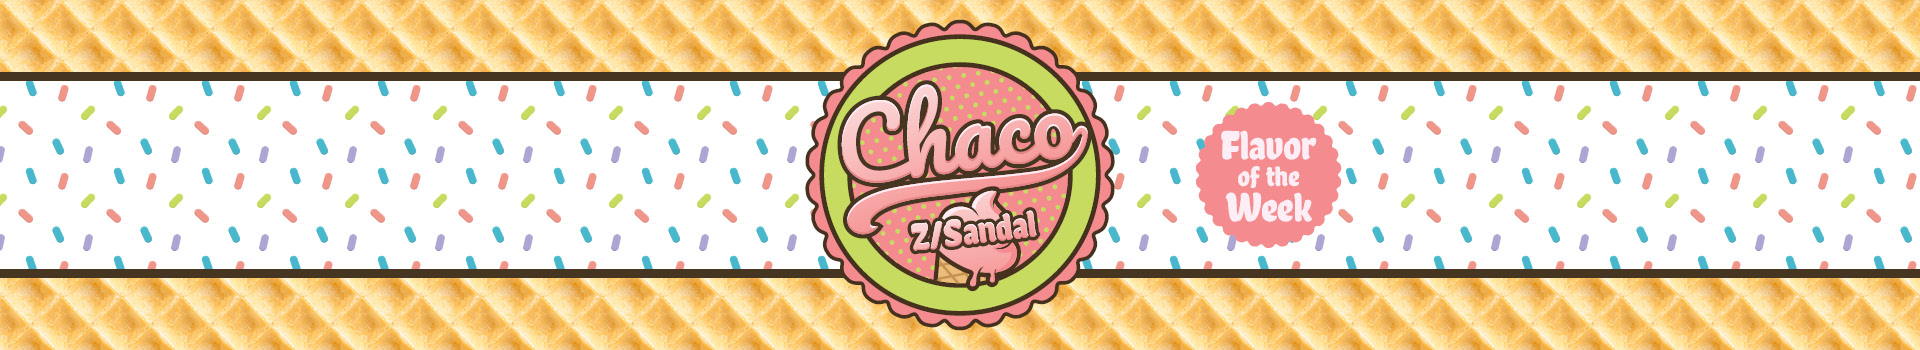 Chaco Munchies Icecream